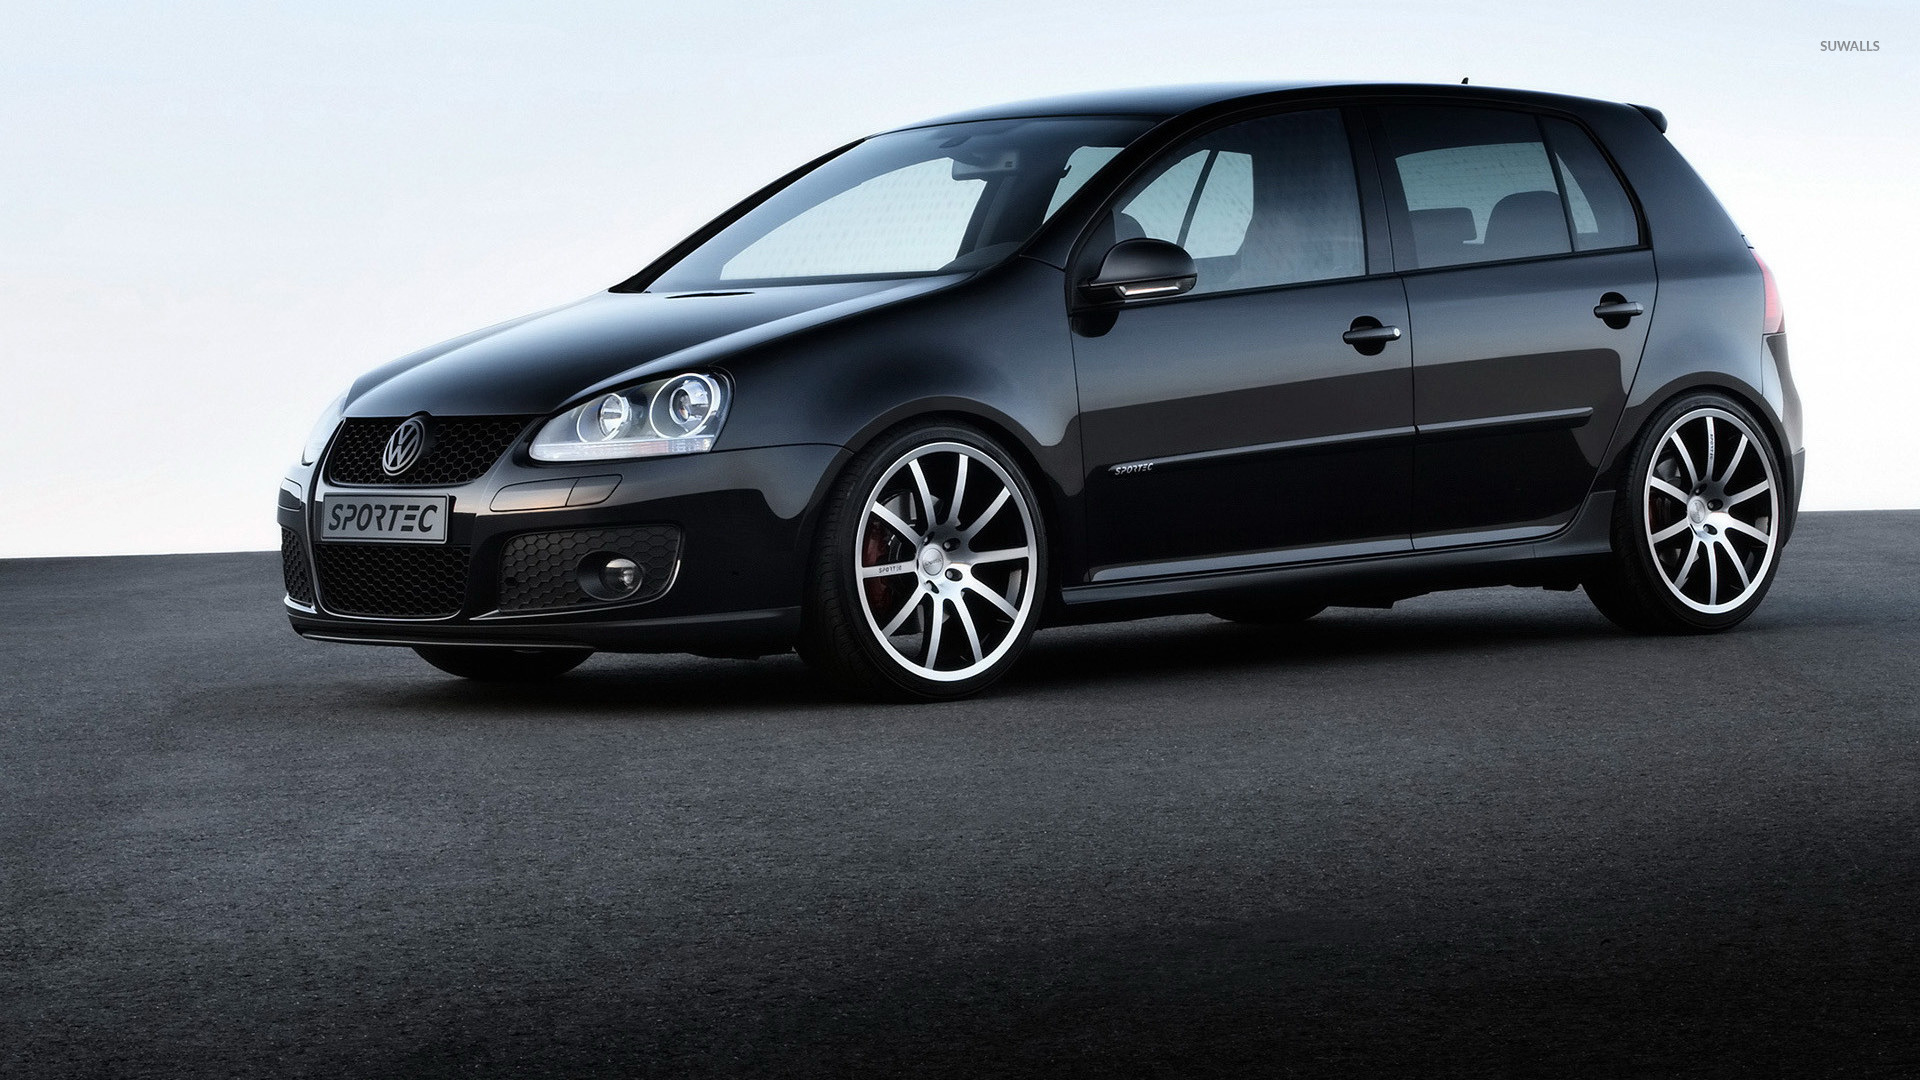 Sportec Volkswagen Golf Mk5 Wallpaper Car Wallpapers